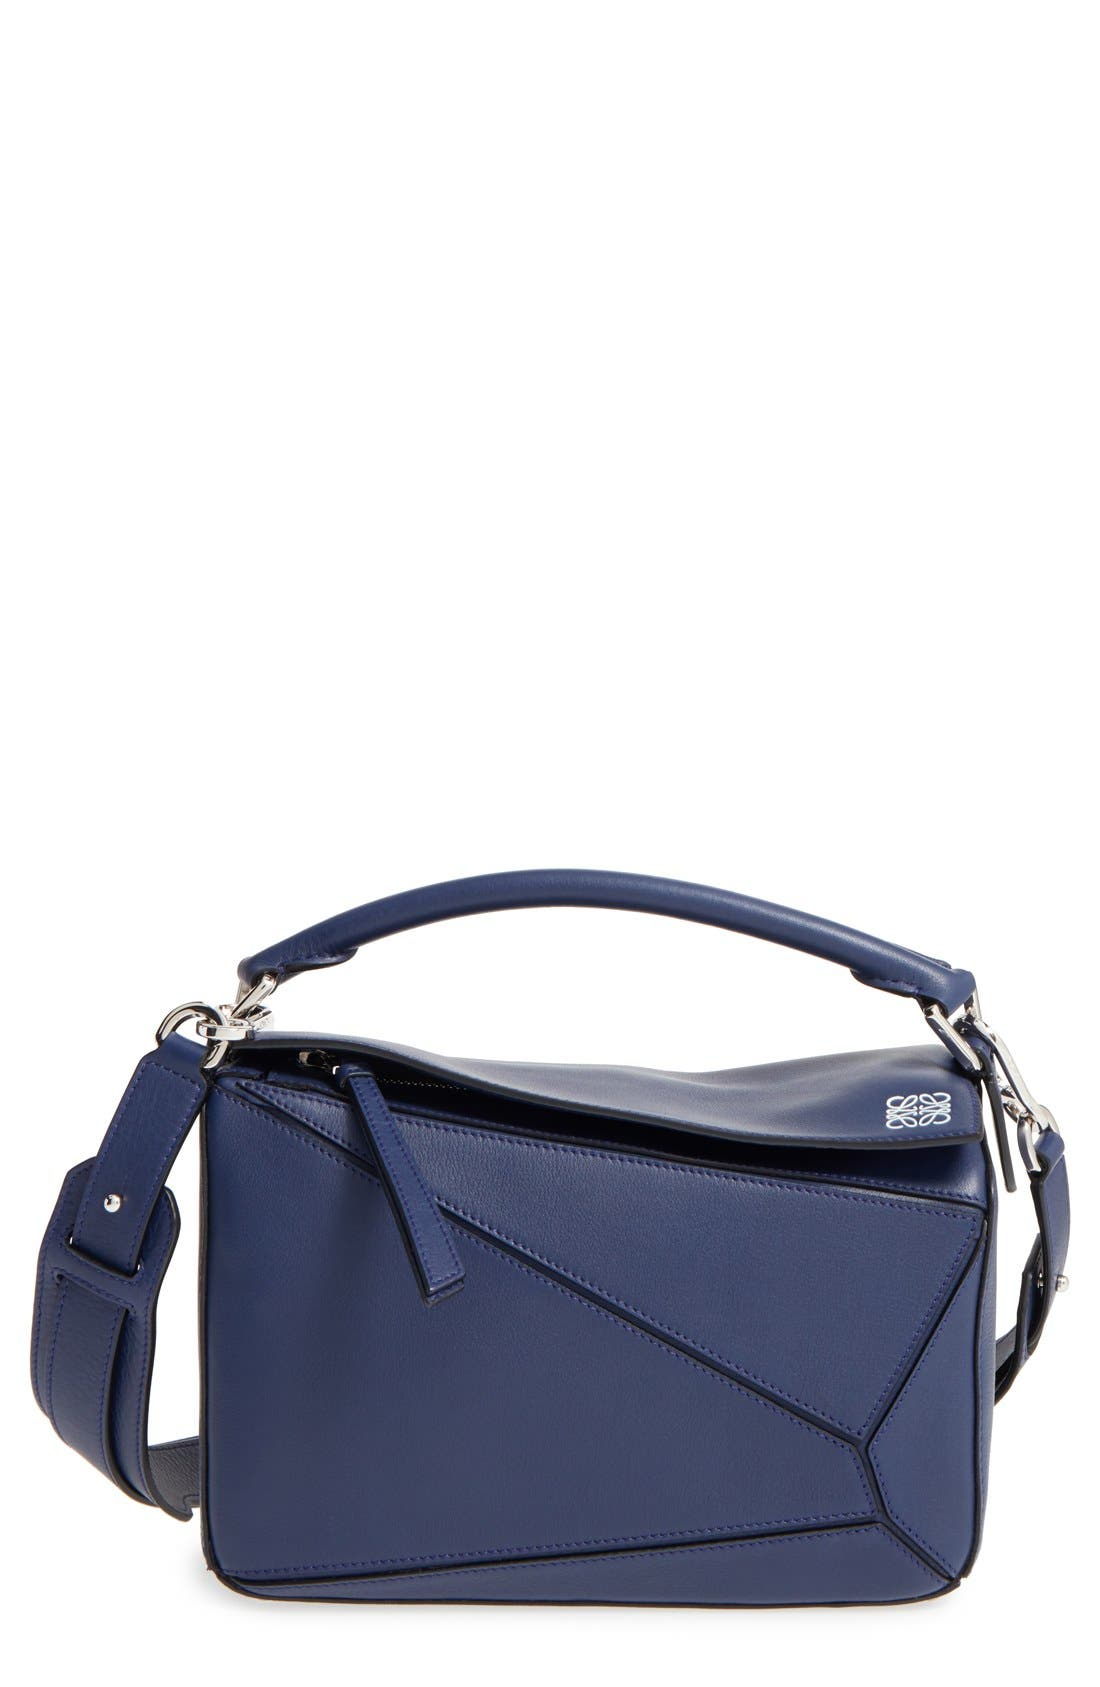 'Small Puzzle' Calfskin Leather Bag,                             Main thumbnail 5, color,